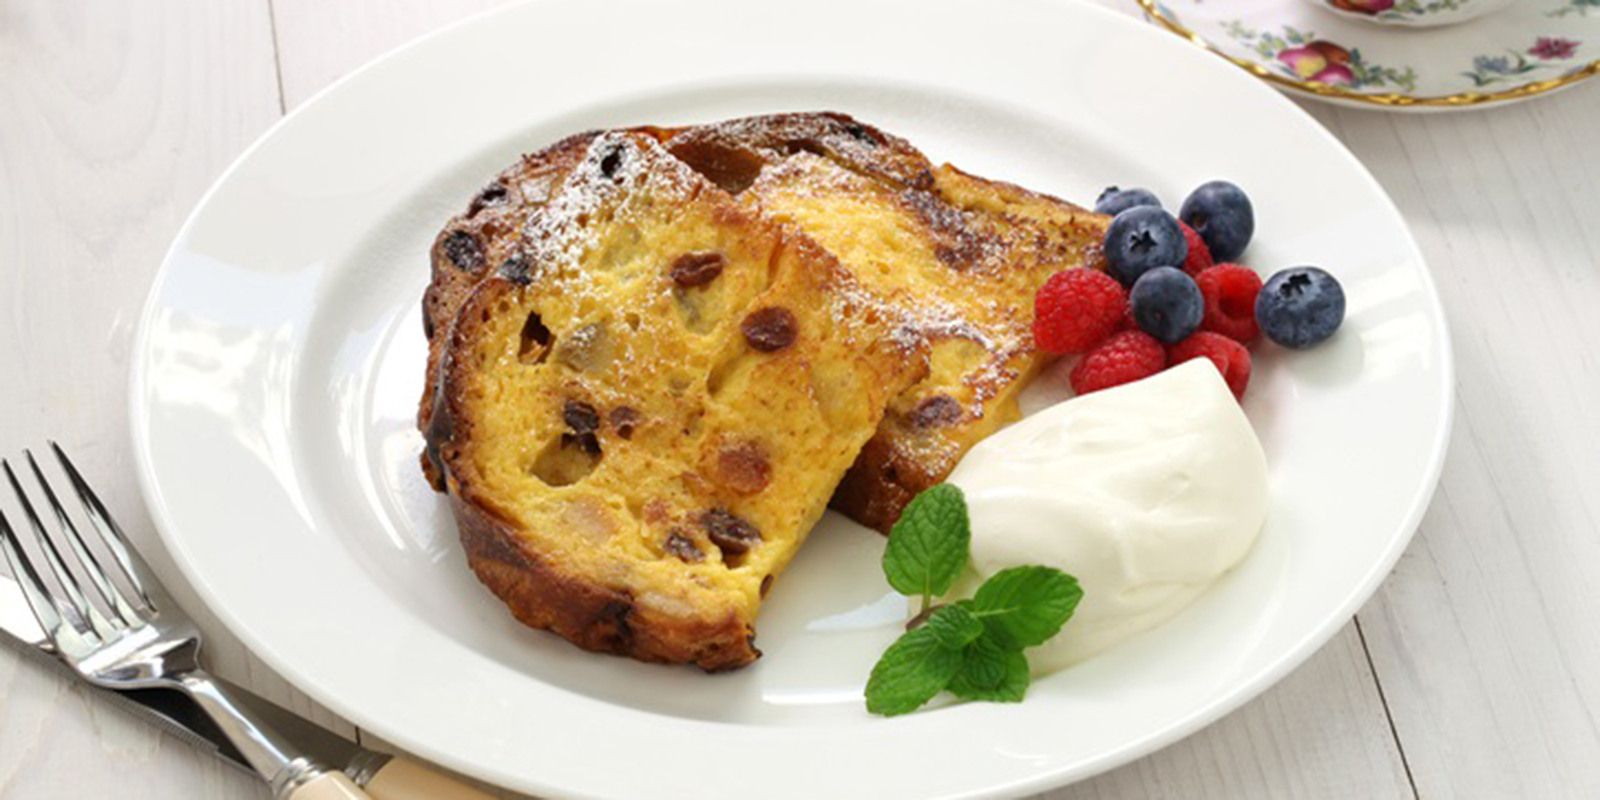 How to recycle the panettone: sweet and savory toast